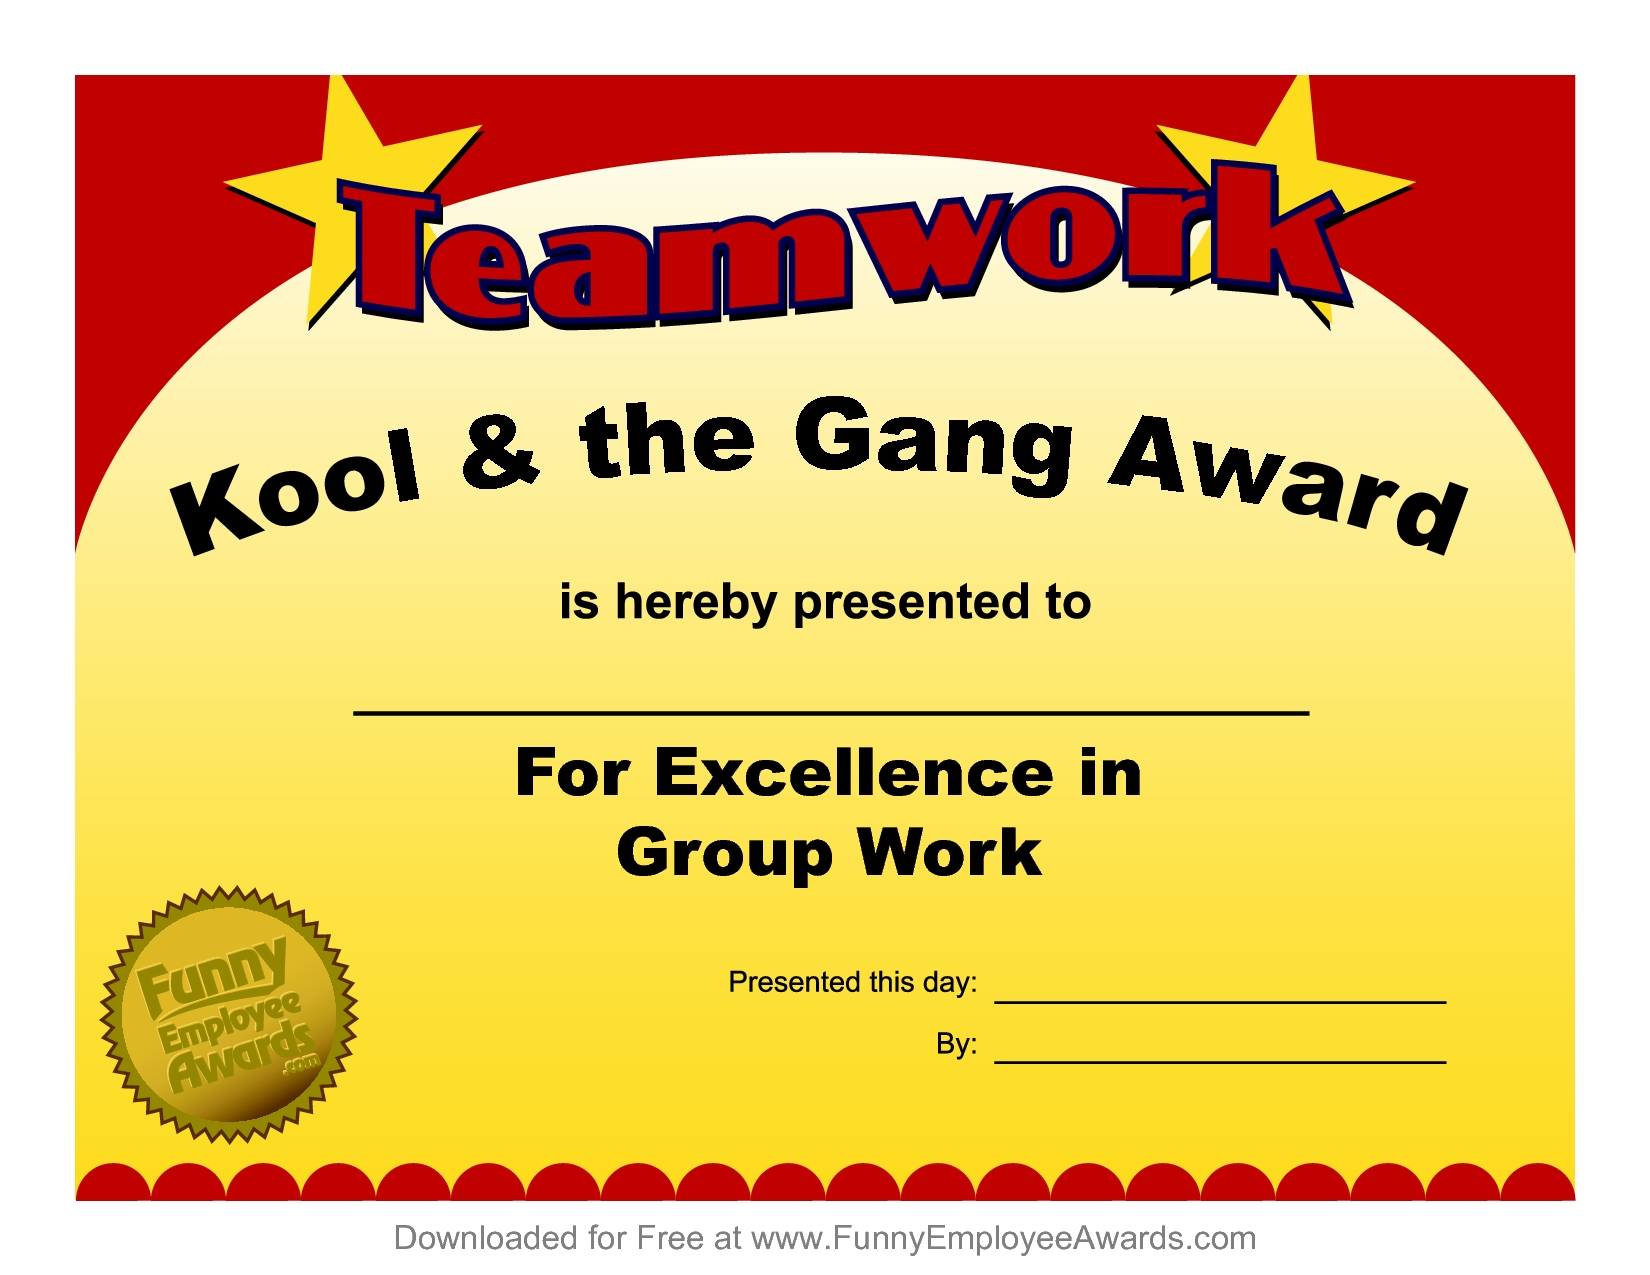 10 Beautiful Funny Award Ideas For Friends funny employee awards google search pinteres 1 2021